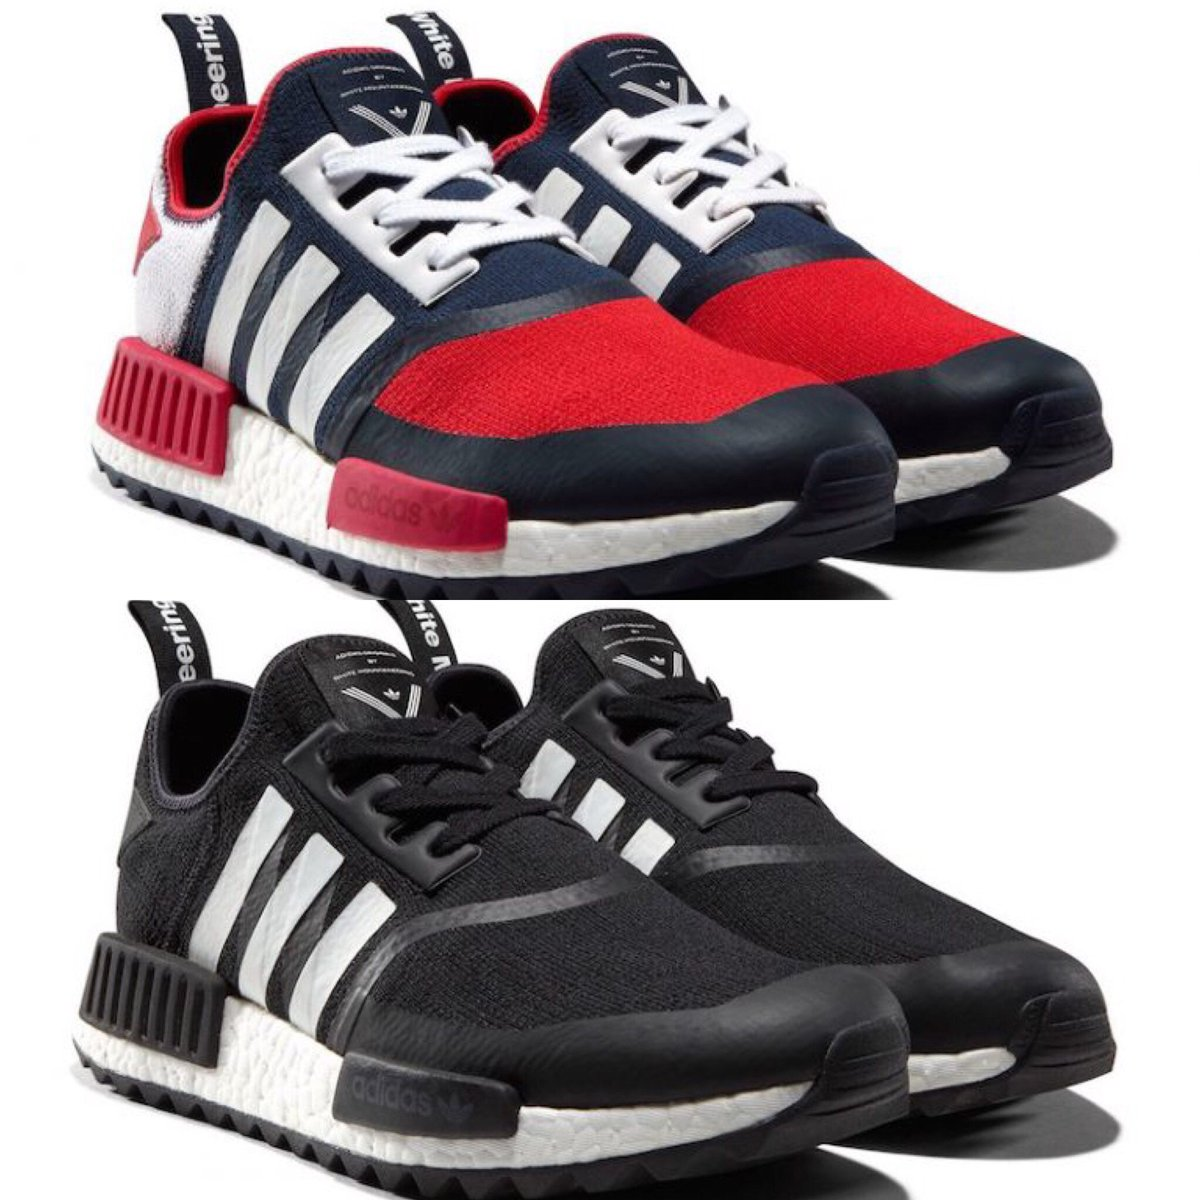 adidas nmd r1 trail shoes back SportStylist